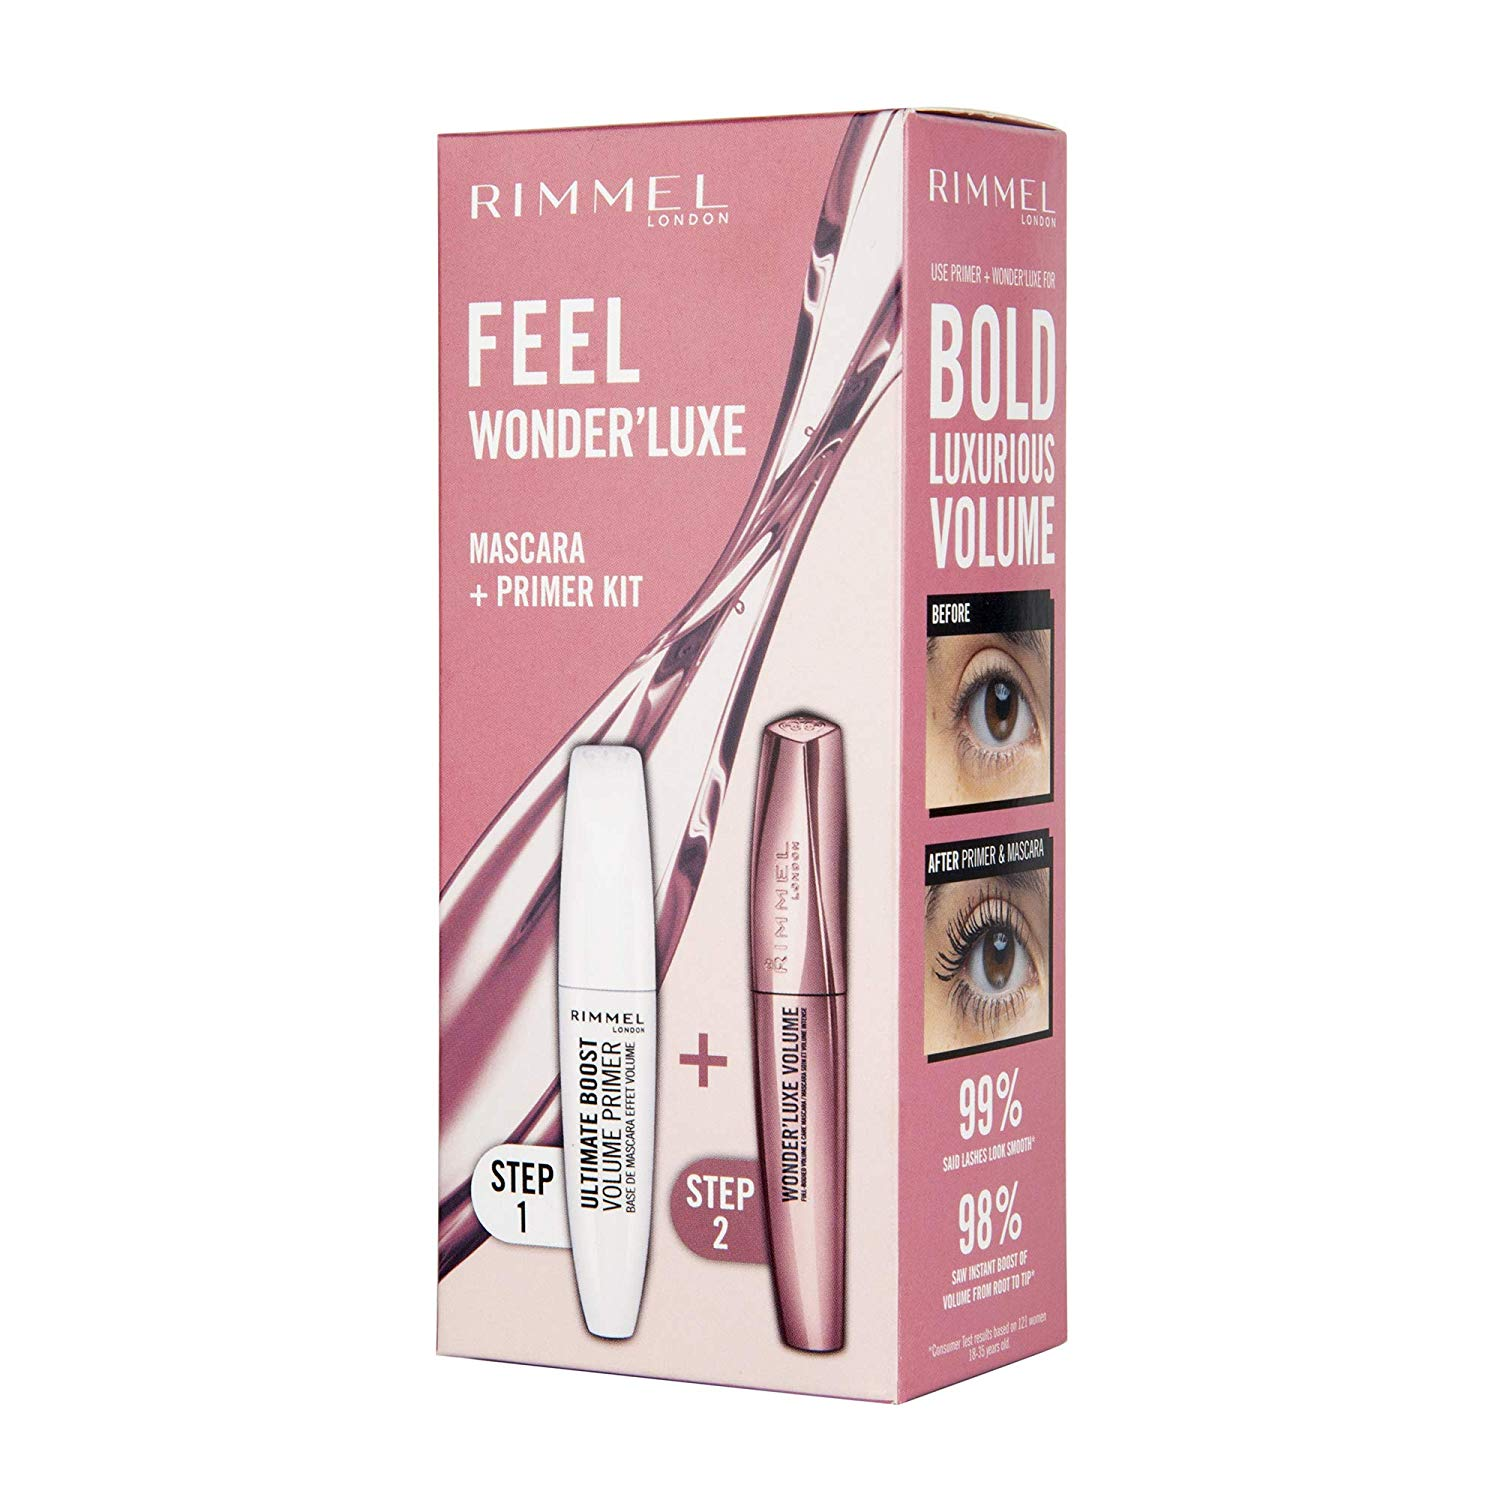 Up to 70% off Rimmel Feel Wonder'Luxe Giftset